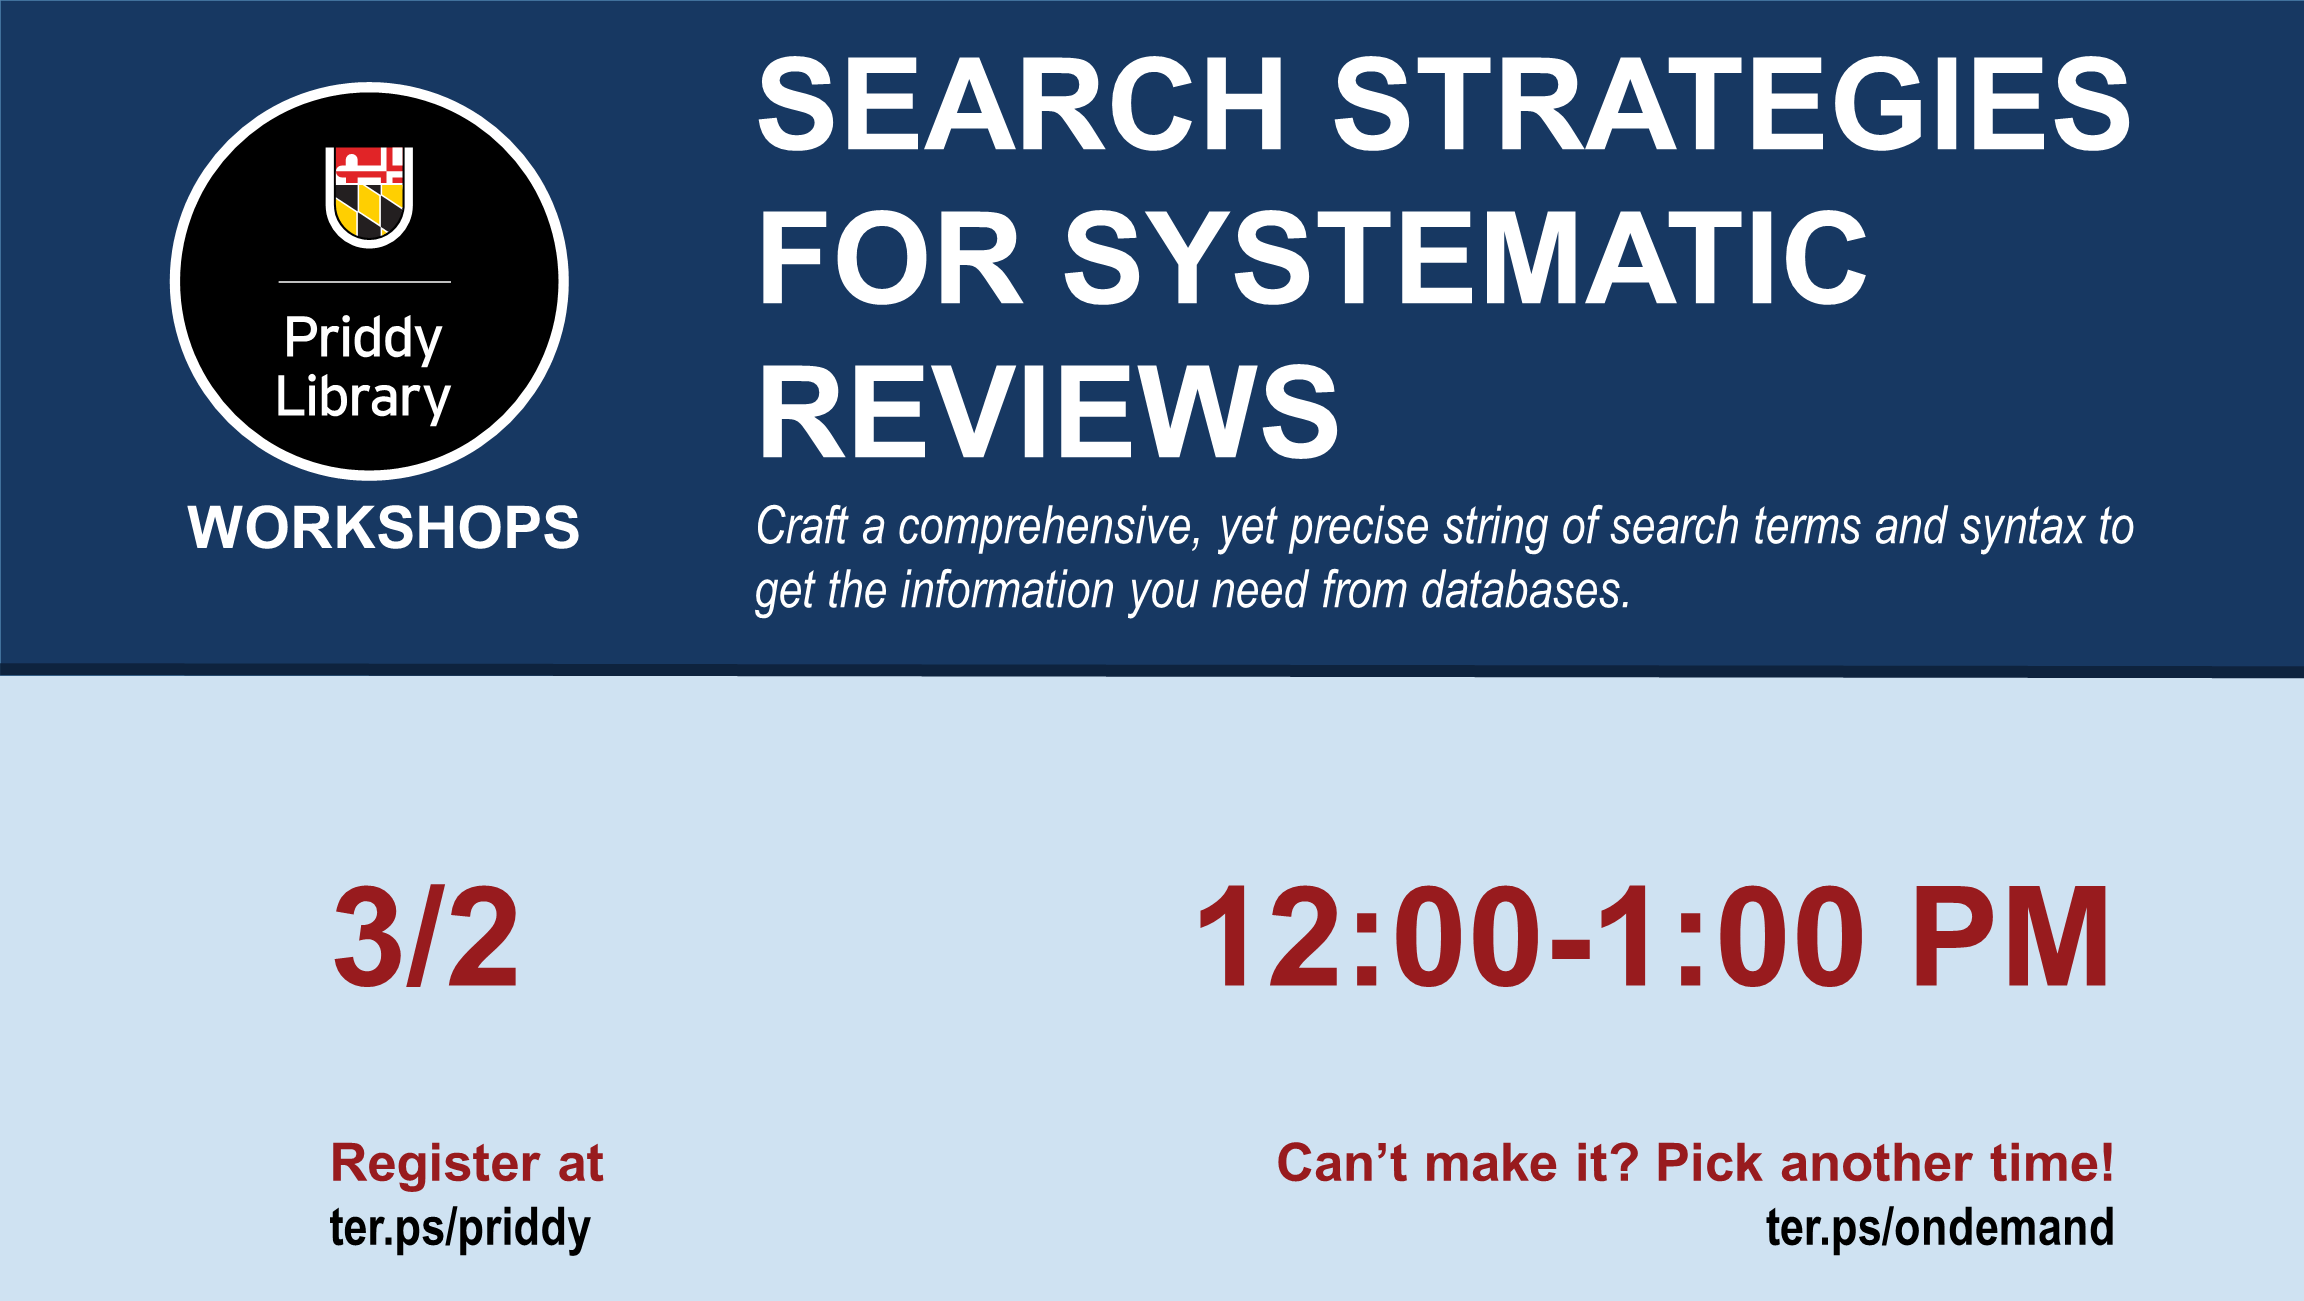 Search Strategies for Systematic Reviews Flyer